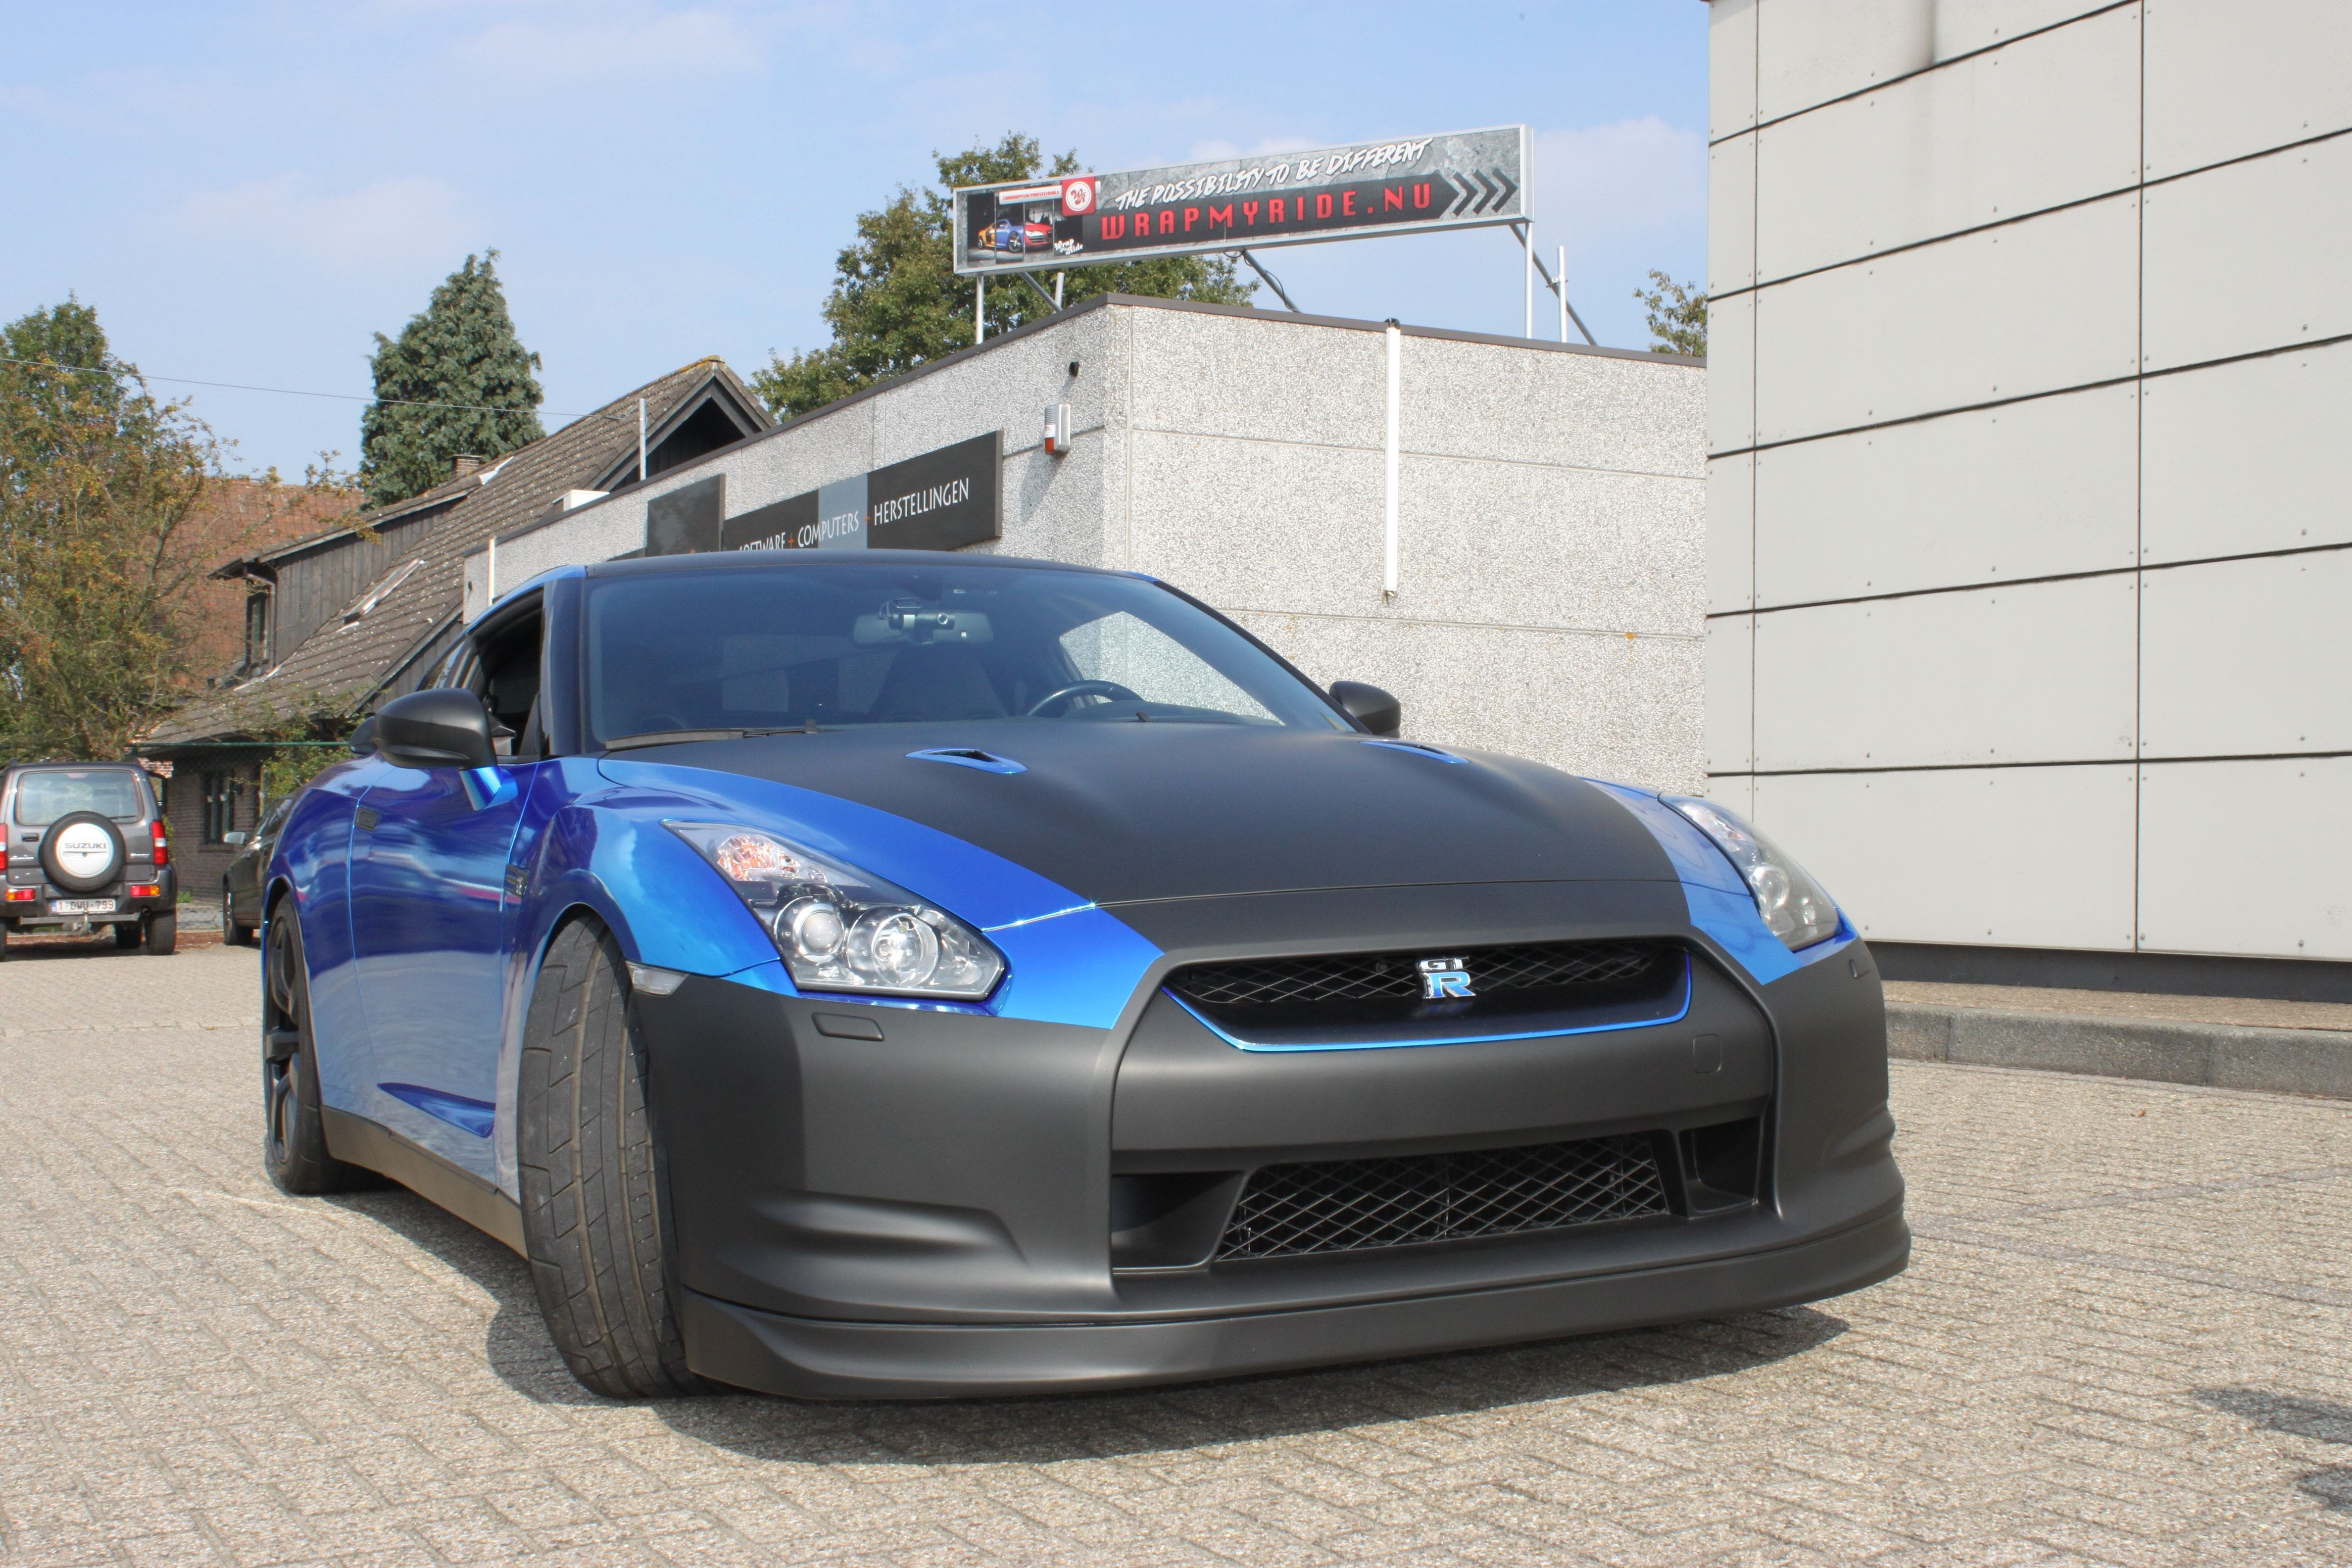 Nissan GT-R met Blue Chrome Wrap, Carwrapping door Wrapmyride.nu Foto-nr:6477, ©2020